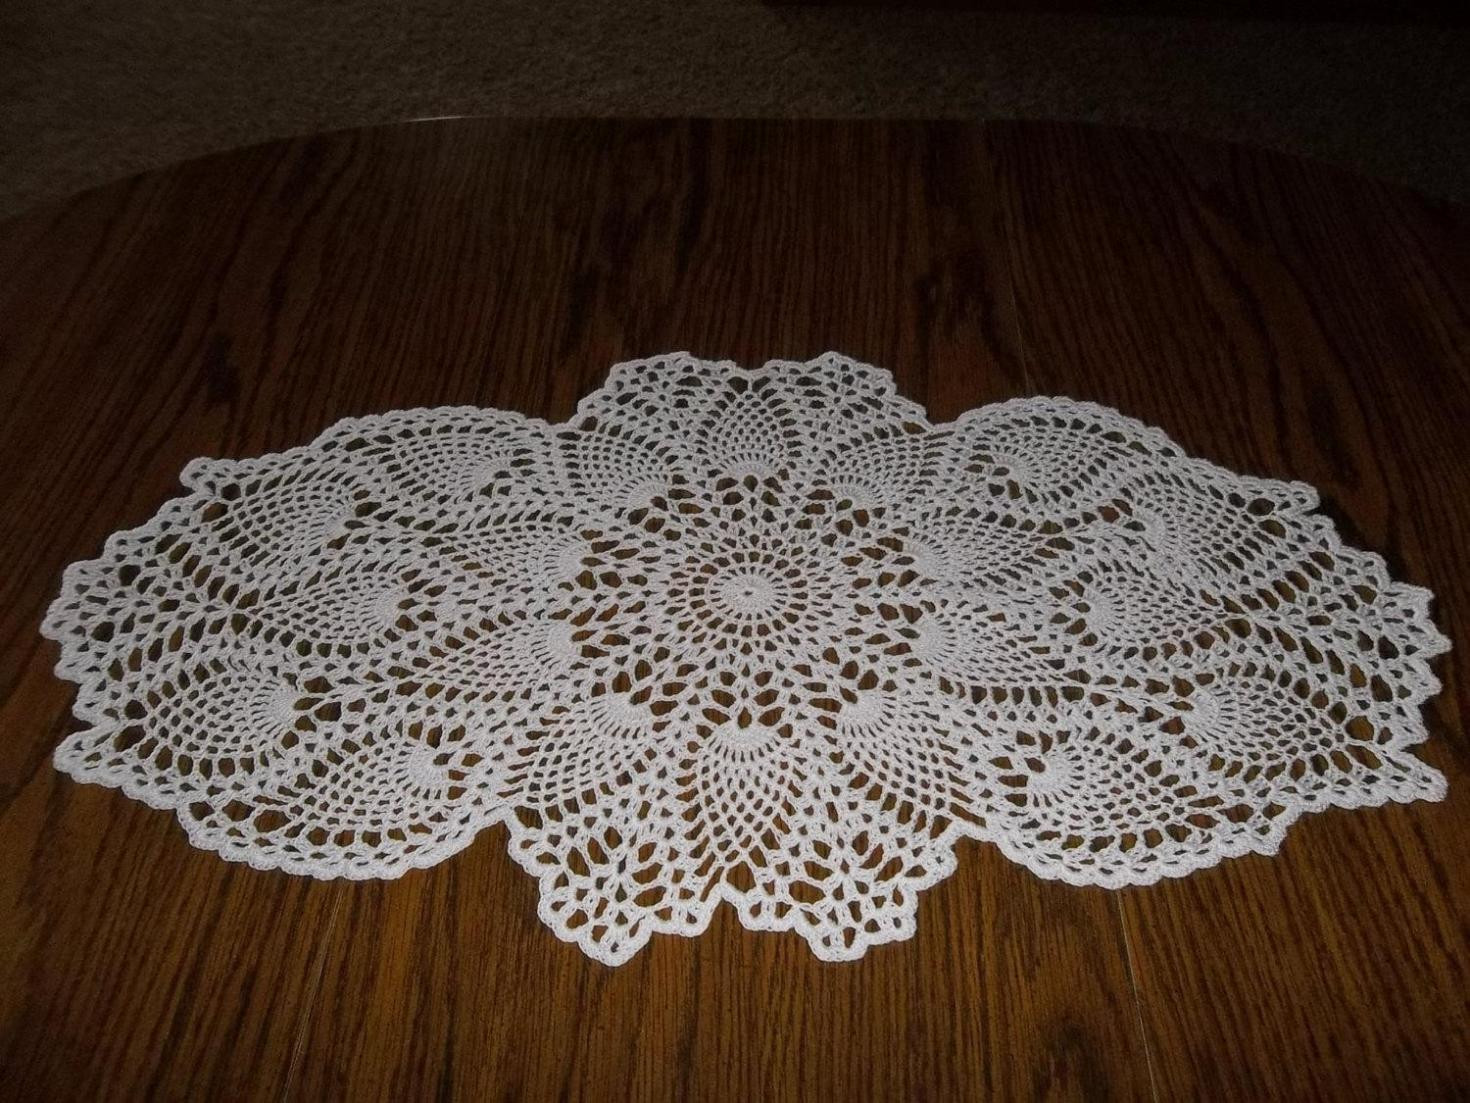 Crochet Patterns Awesome Just for You 17 Crochet Table Runner Patterns for Of Charming 50 Models Crochet Patterns